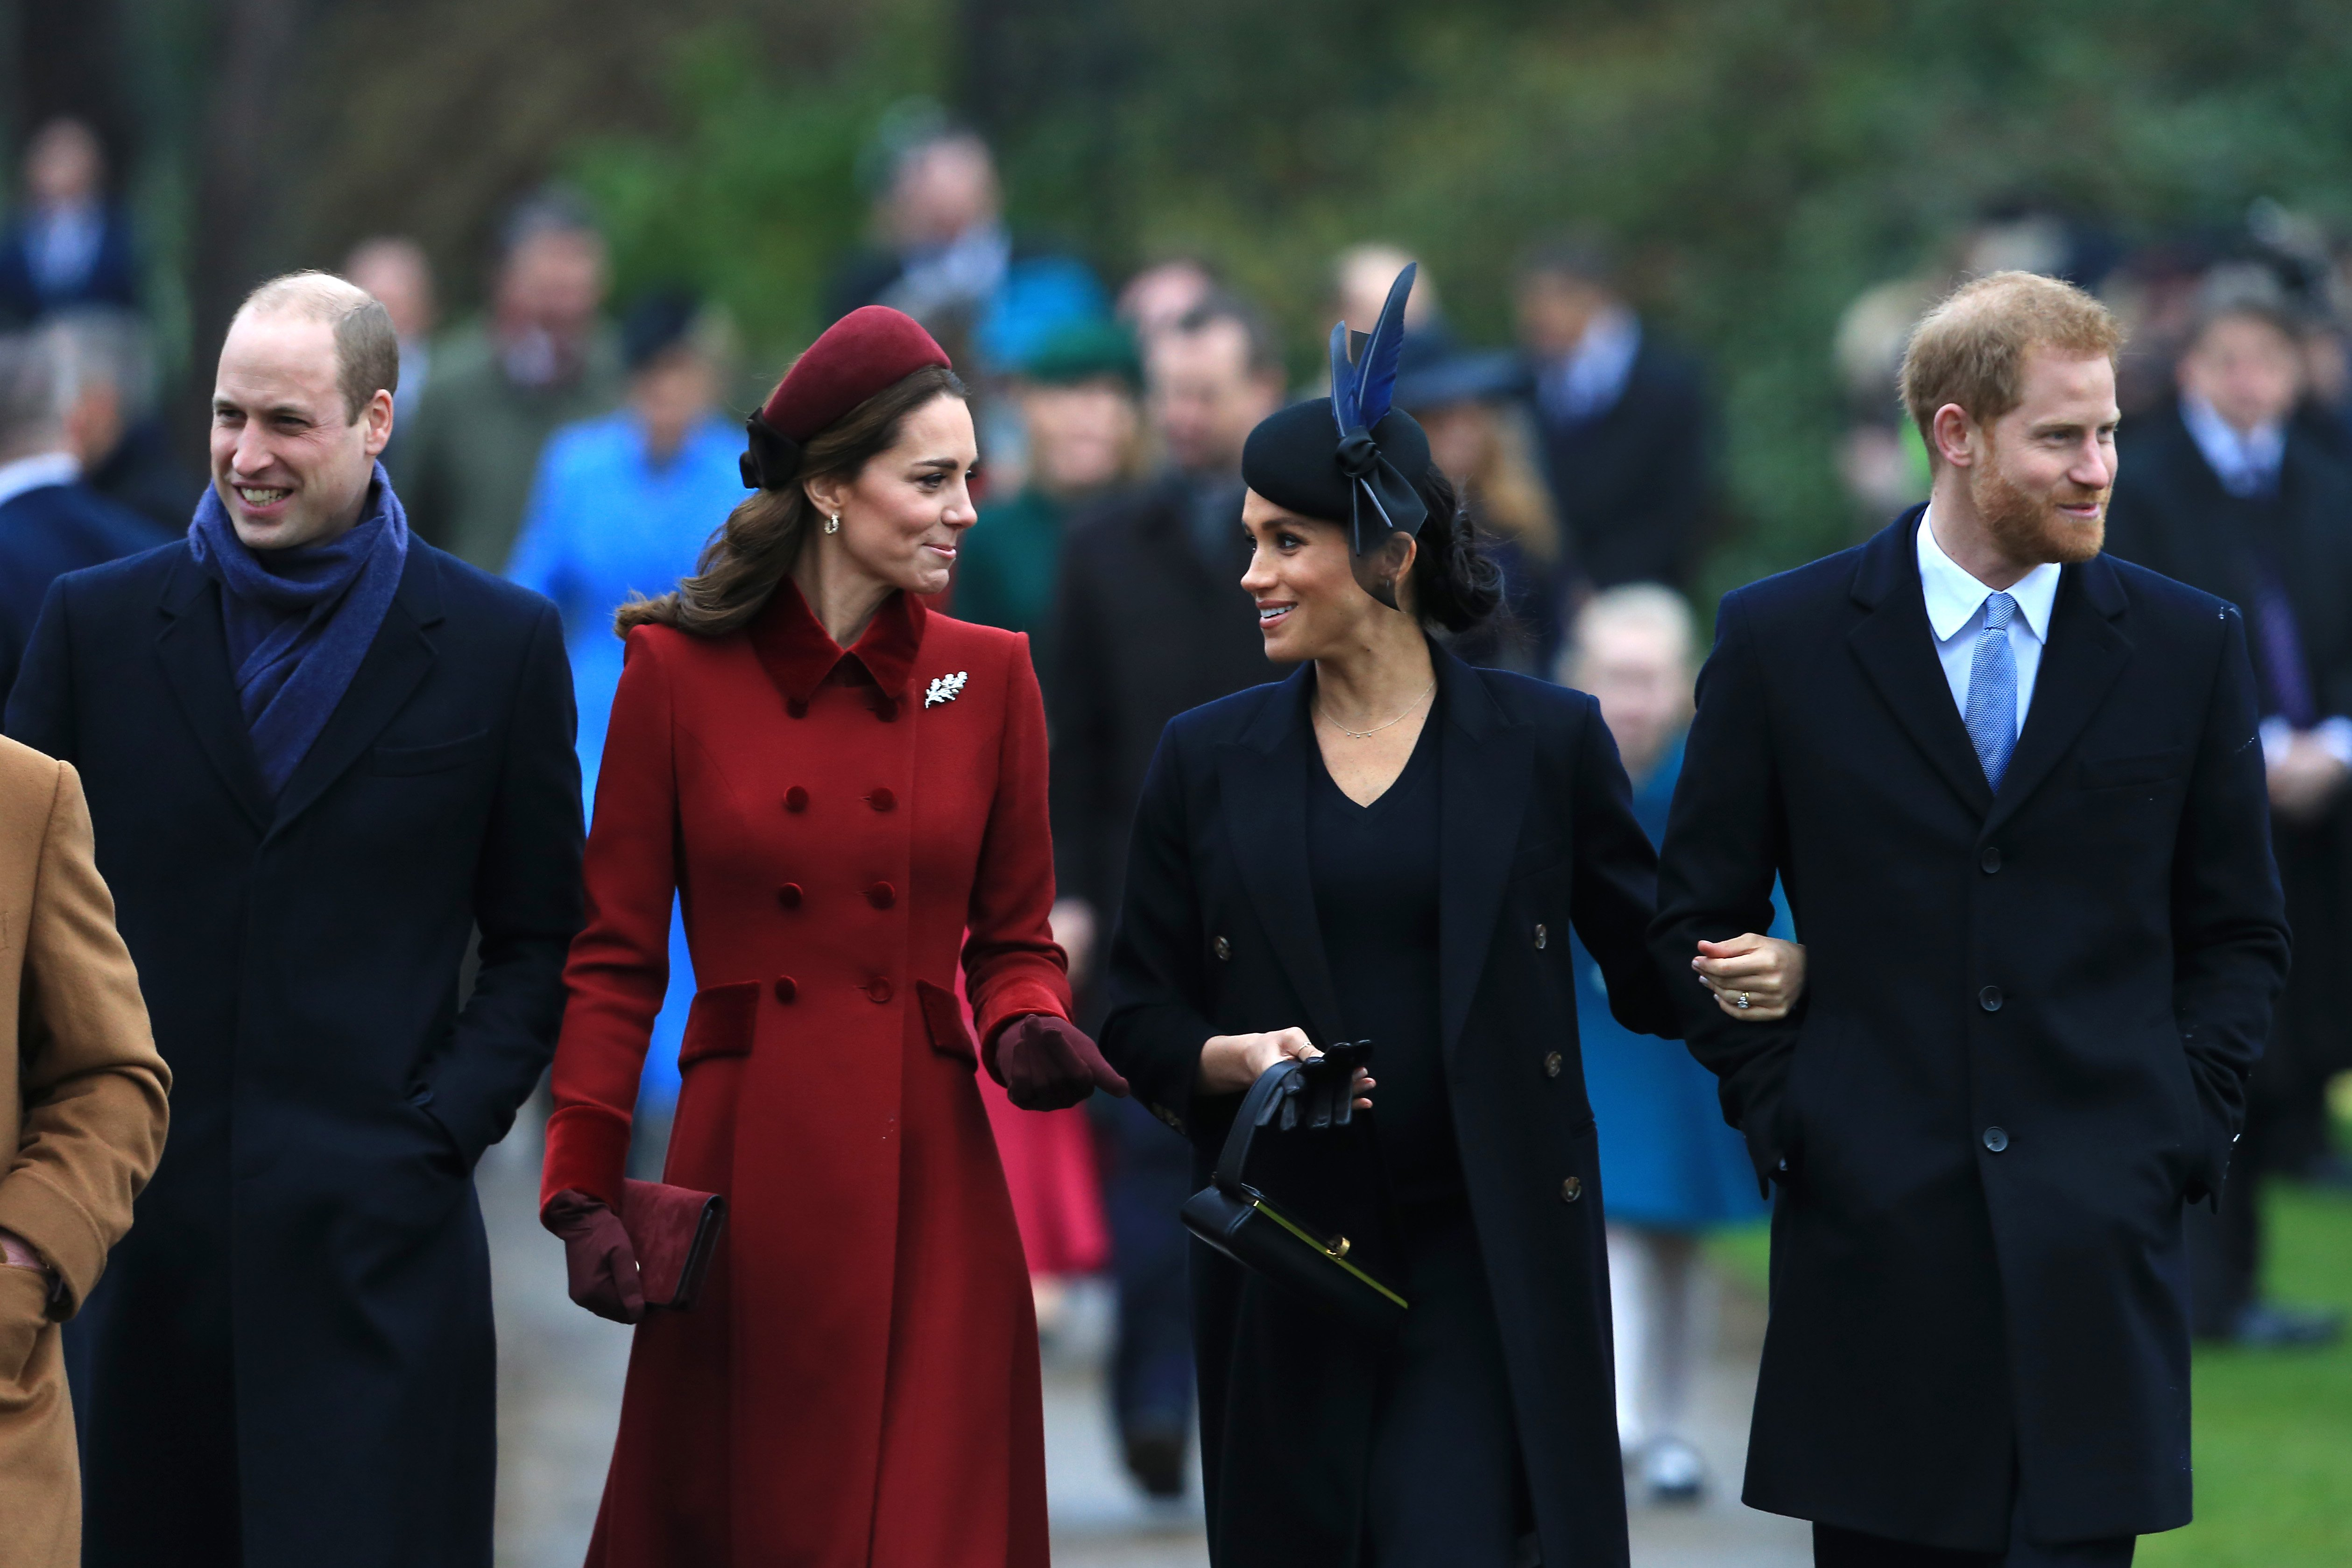 Prince William, Kate Middleton, Meghan Markle and Prince Harry arrive to attend Christmas Day Church service at Church of St Mary Magdalene on the Sandringham estate on December 25, 2018 in King's Lynn, England | Photo: Getty Images